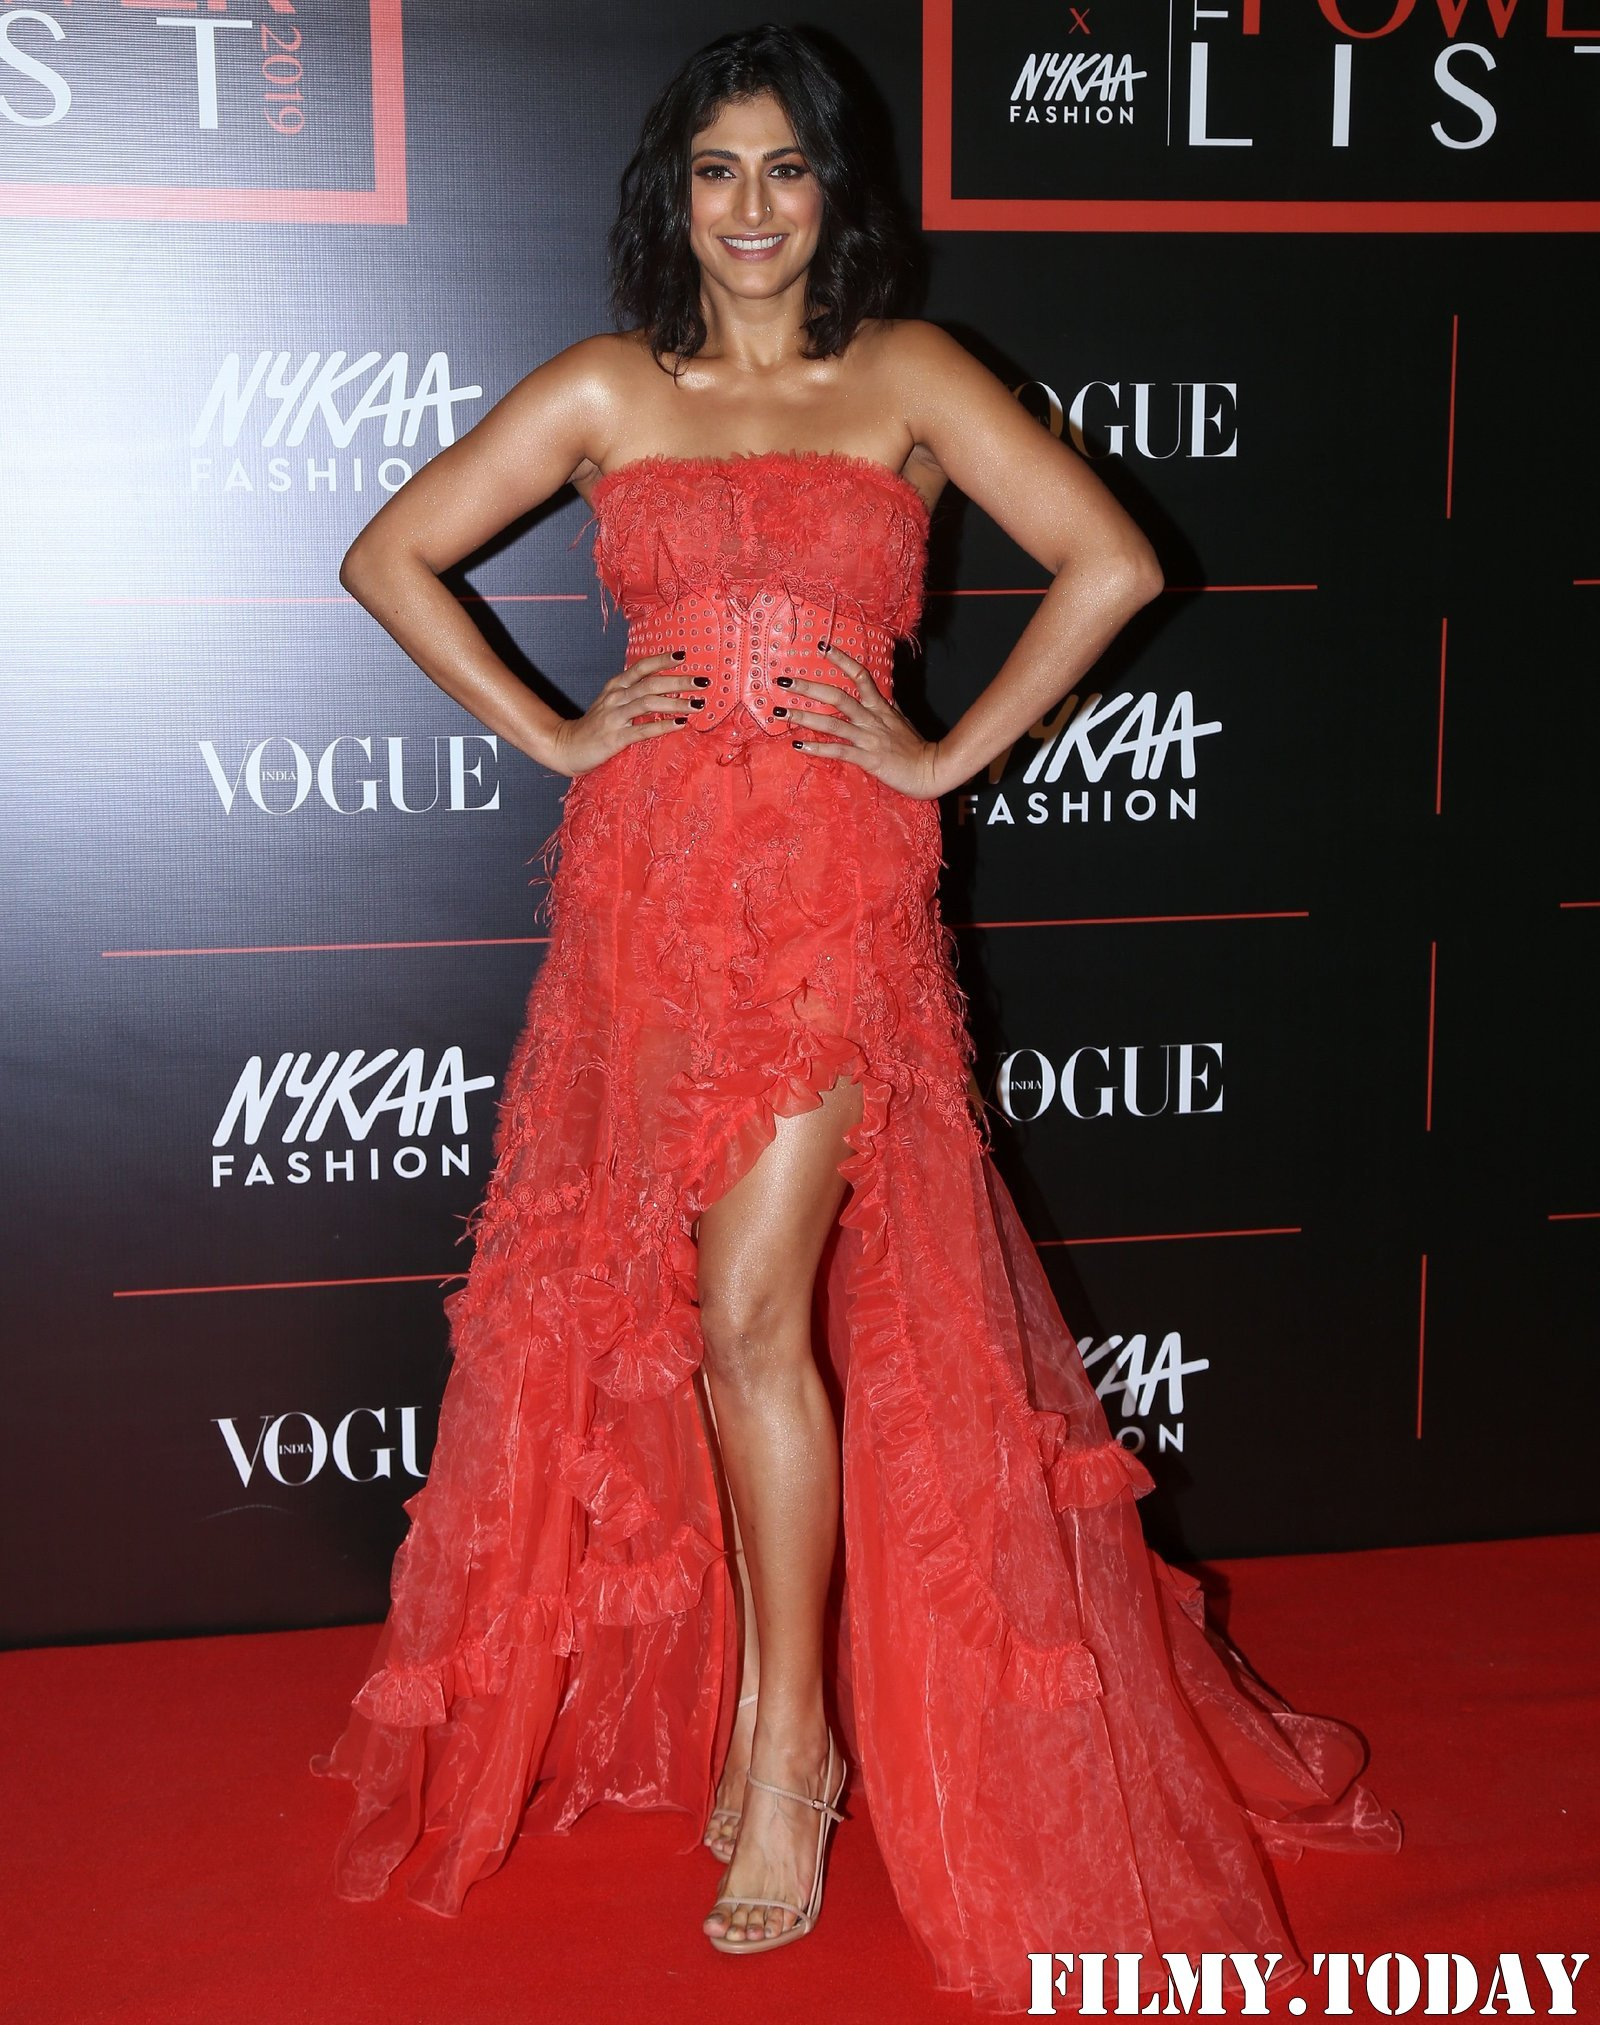 Kubbra Sait - Photos: Celebs At Vogue The Power List 2019 At St Regis Hotel | Picture 1706257